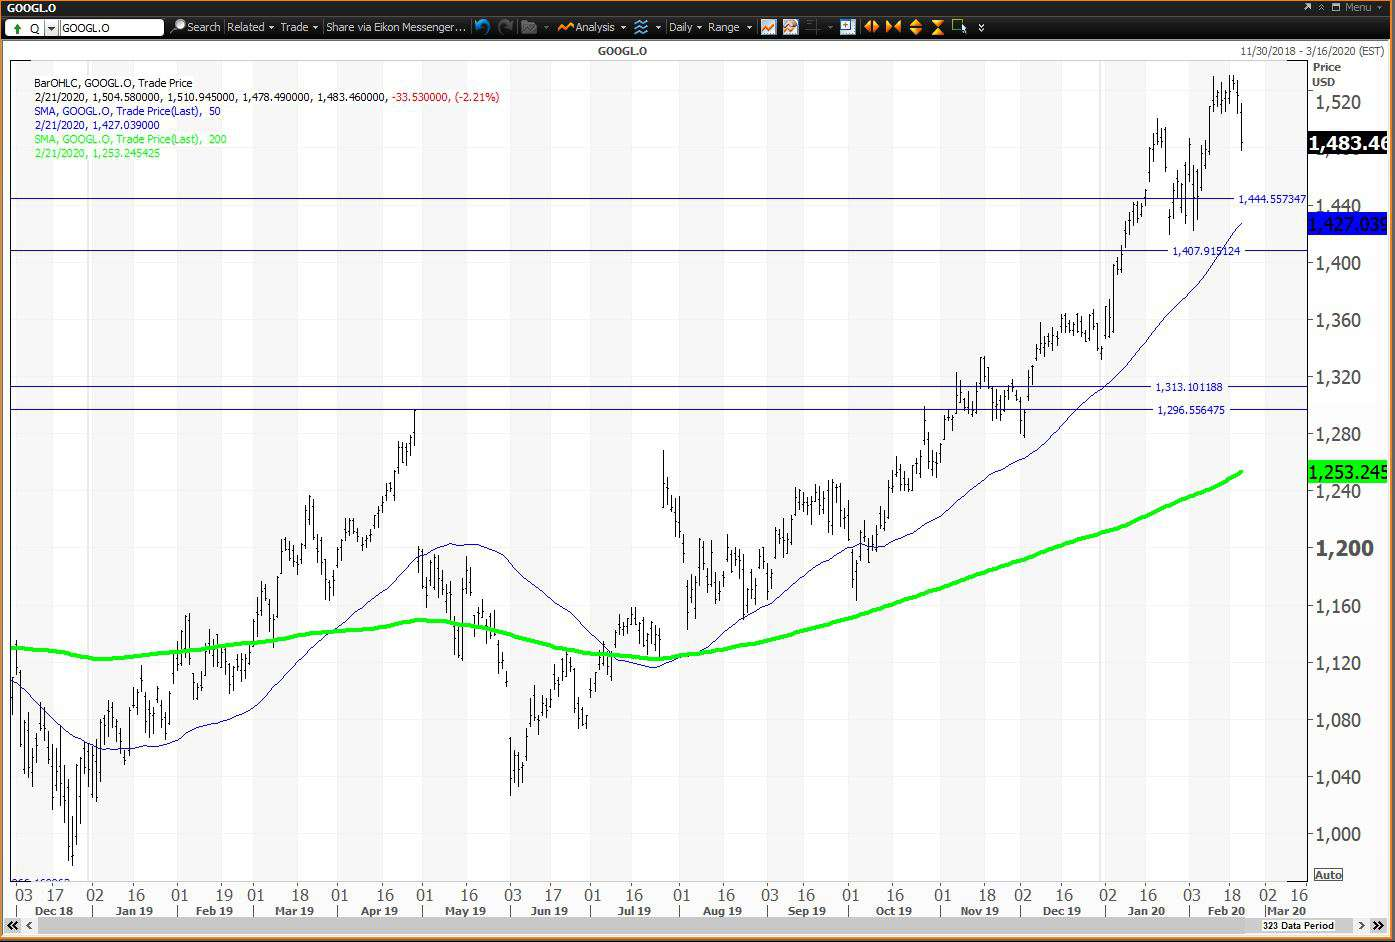 Daily chart showing the share price performance of Alphabet Inc. (GOOGL)